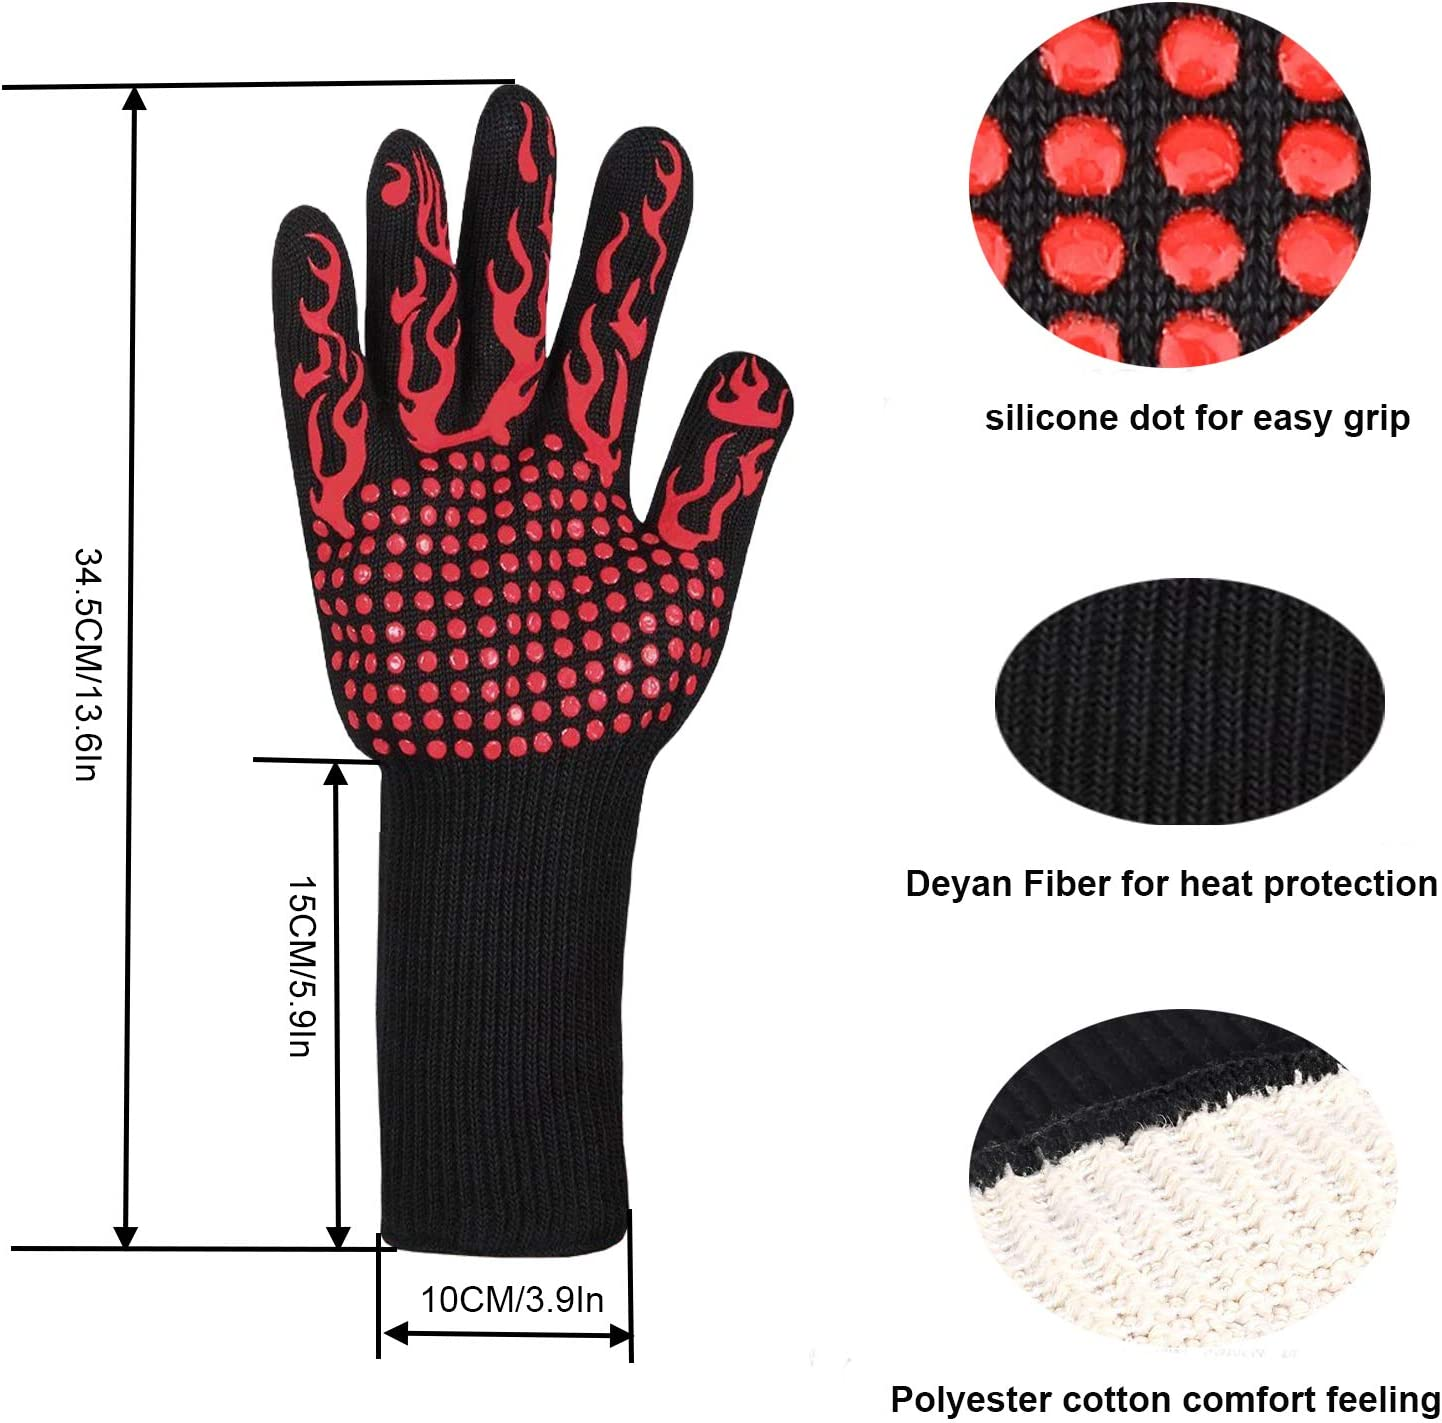 Grill Gloves,Heat Resistant BBQ Gloves,Fireproof Insulated Asbestos Oven Mitts,13.7 Full Finger Wrist Protection,with Meat Claws,Basting Brush,BBQ Thermometer 4pcs set,For Baking,Cooking Red